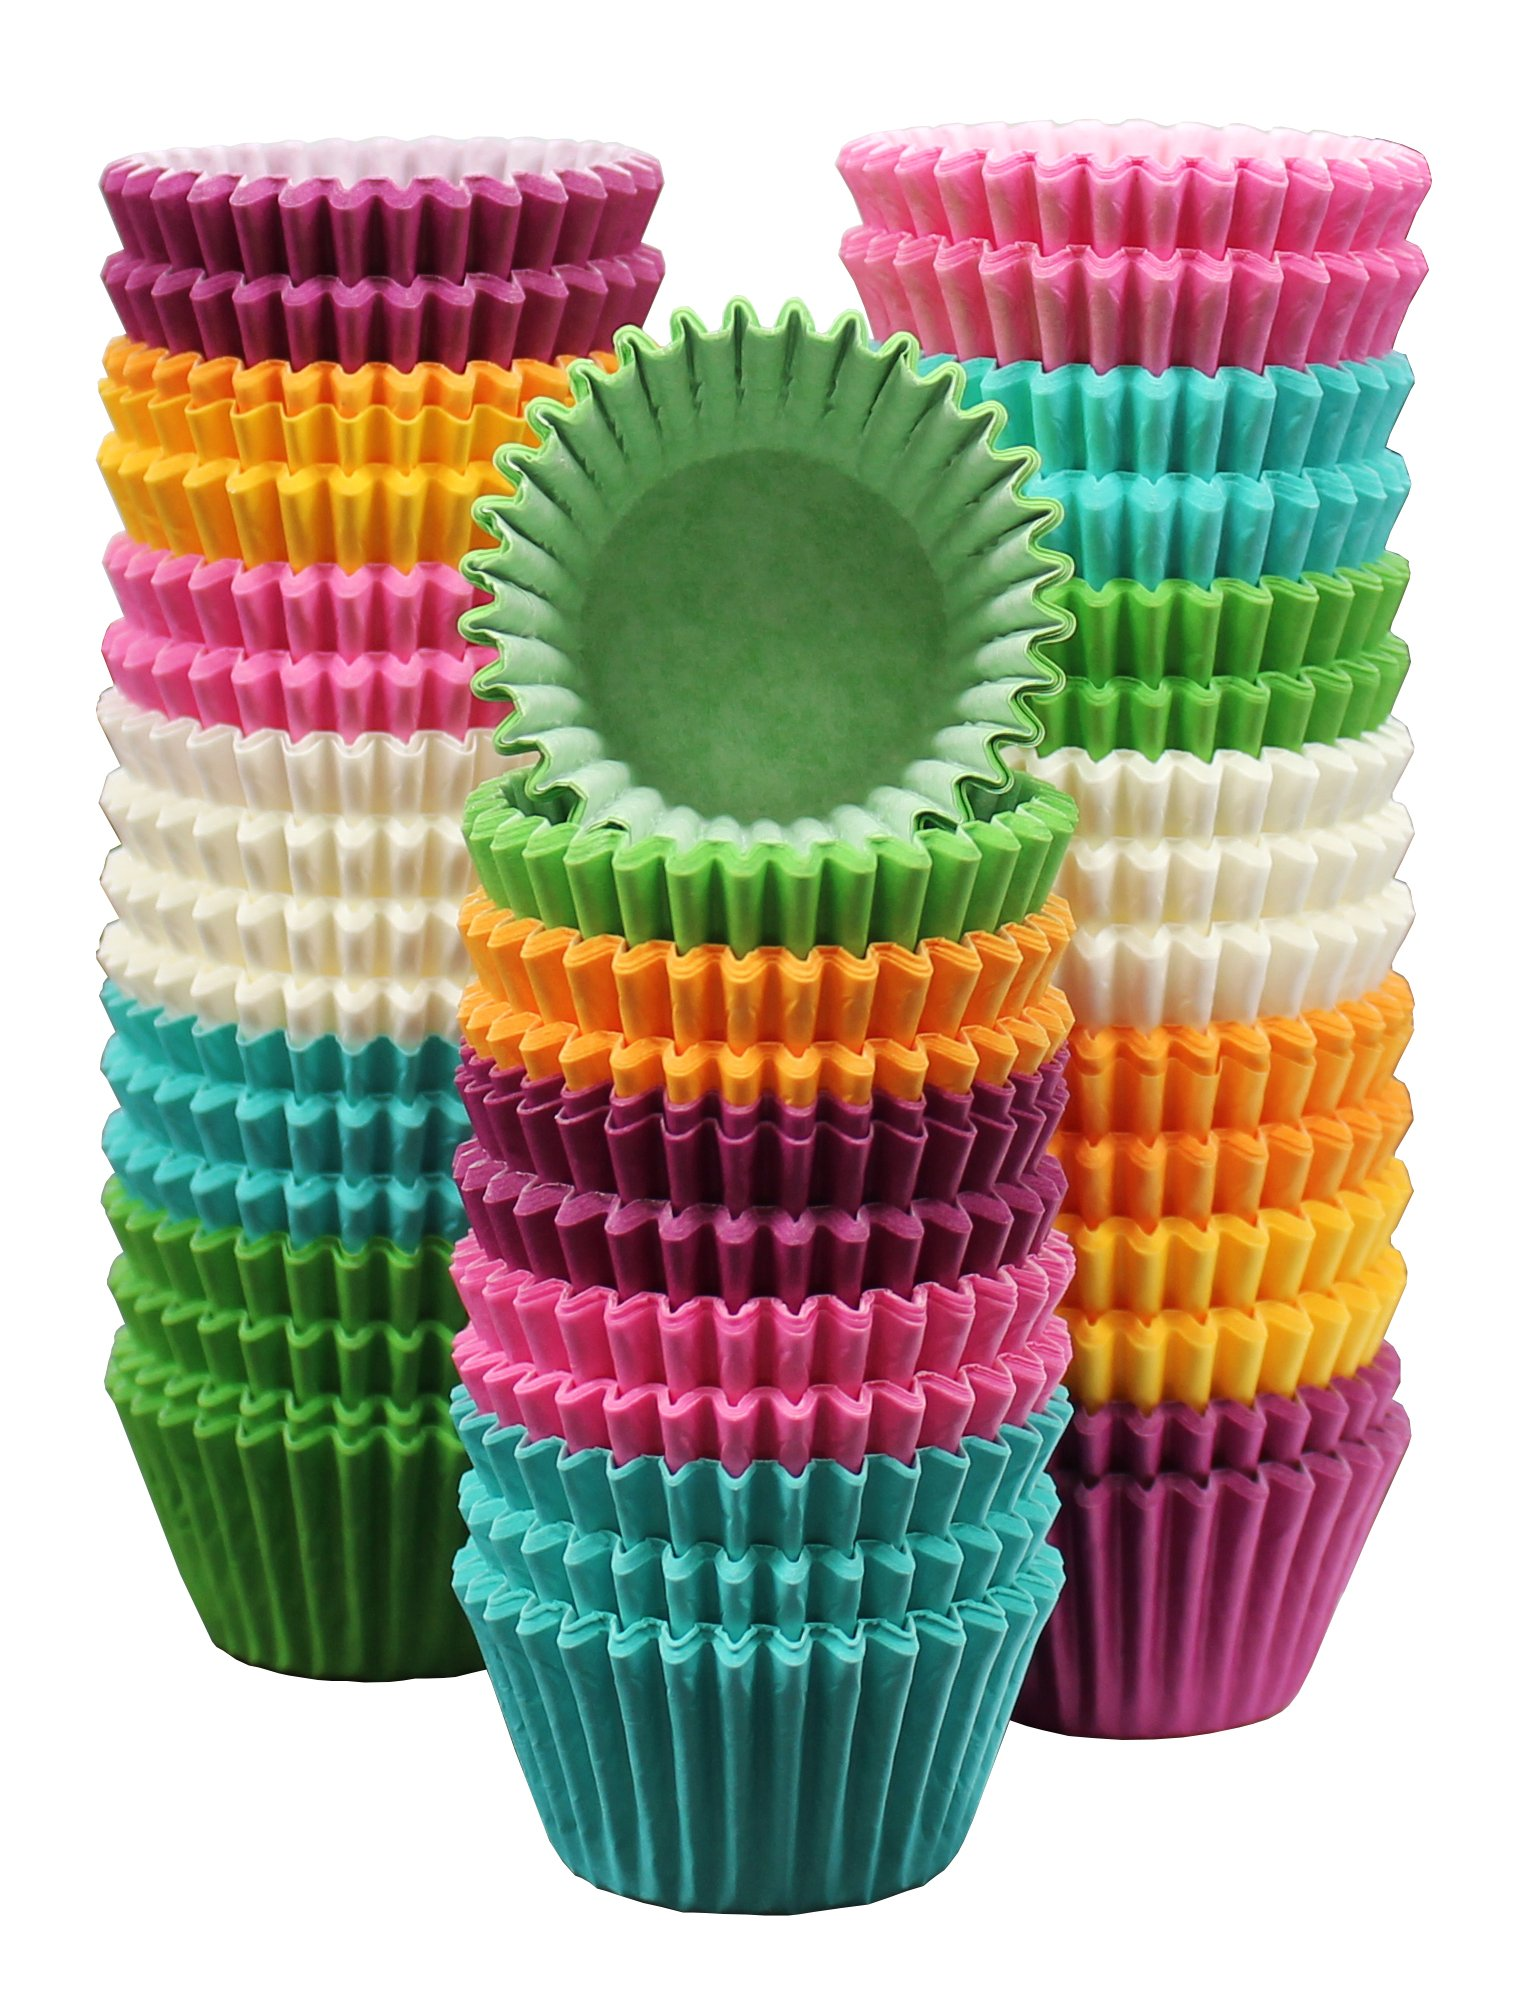 MontoPack 300-Pack Holiday Party Rainbow Paper Baking Cups - Mini 1.15'' No Smell, Safe Food Grade Inks and Paper Grease Proof Cupcake Liners Perfect Cups for Cake Balls, Muffins, Cupcakes, and Candies